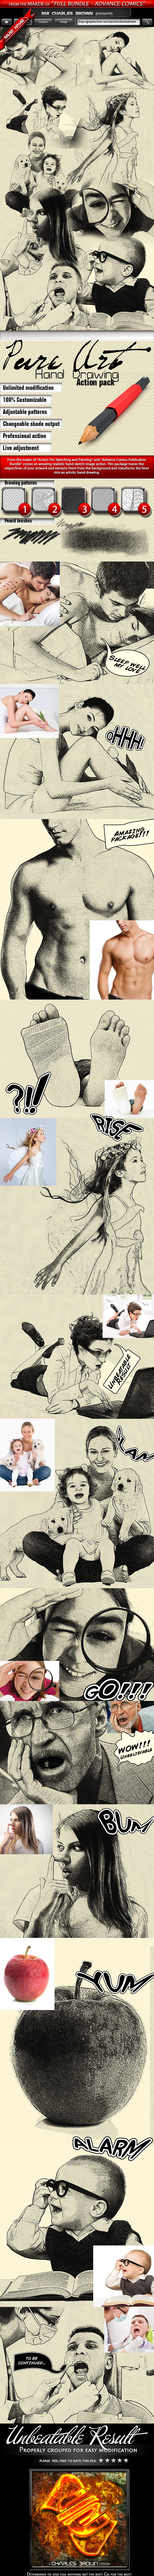 Pure art hand drawing by mrcharlesbrown graphicriver pure art hand drawing malvernweather Images